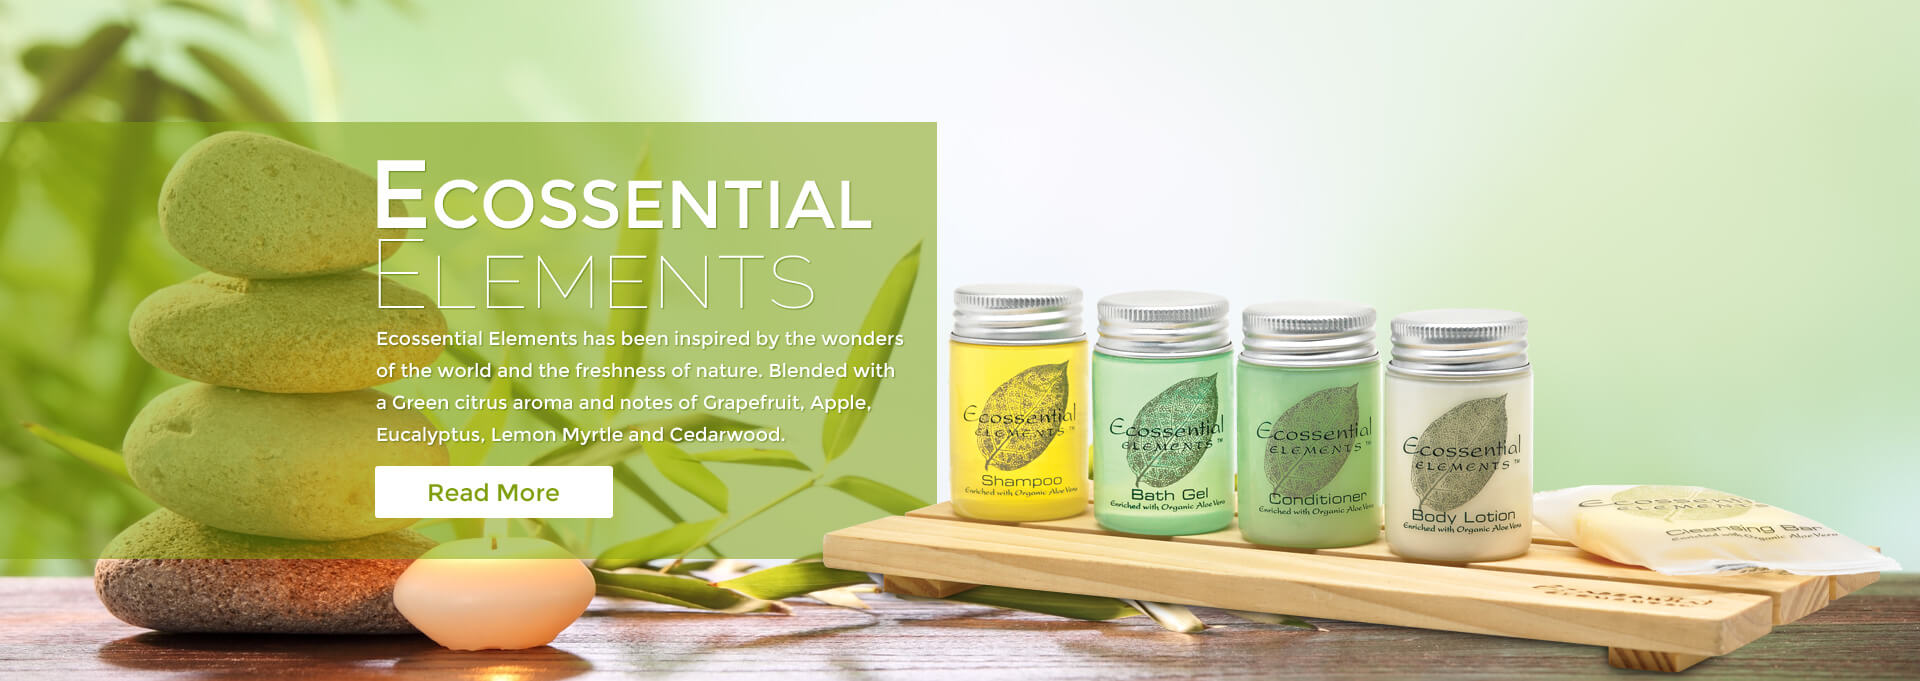 Eco essentials mini toiletries